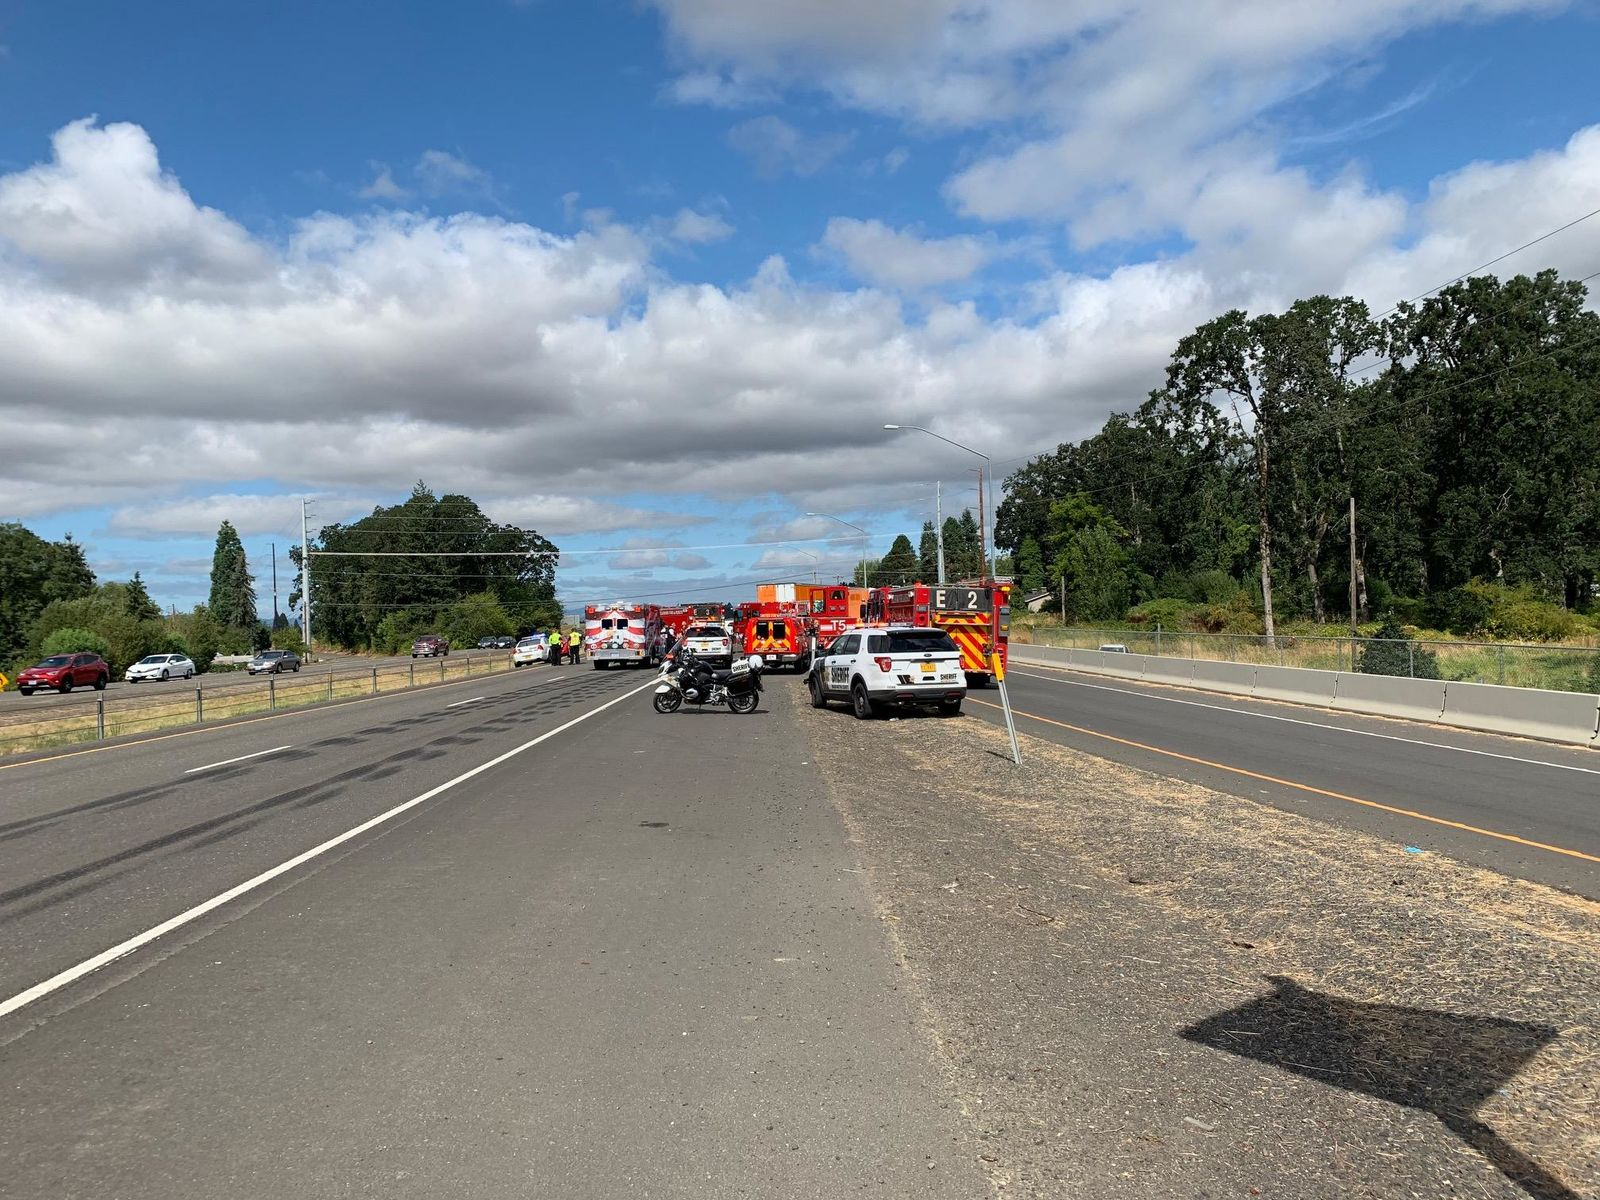 Crash on Hwy 26 WB at Helvetia Road interchange. (Photo: Washington County Sheriff's Office)